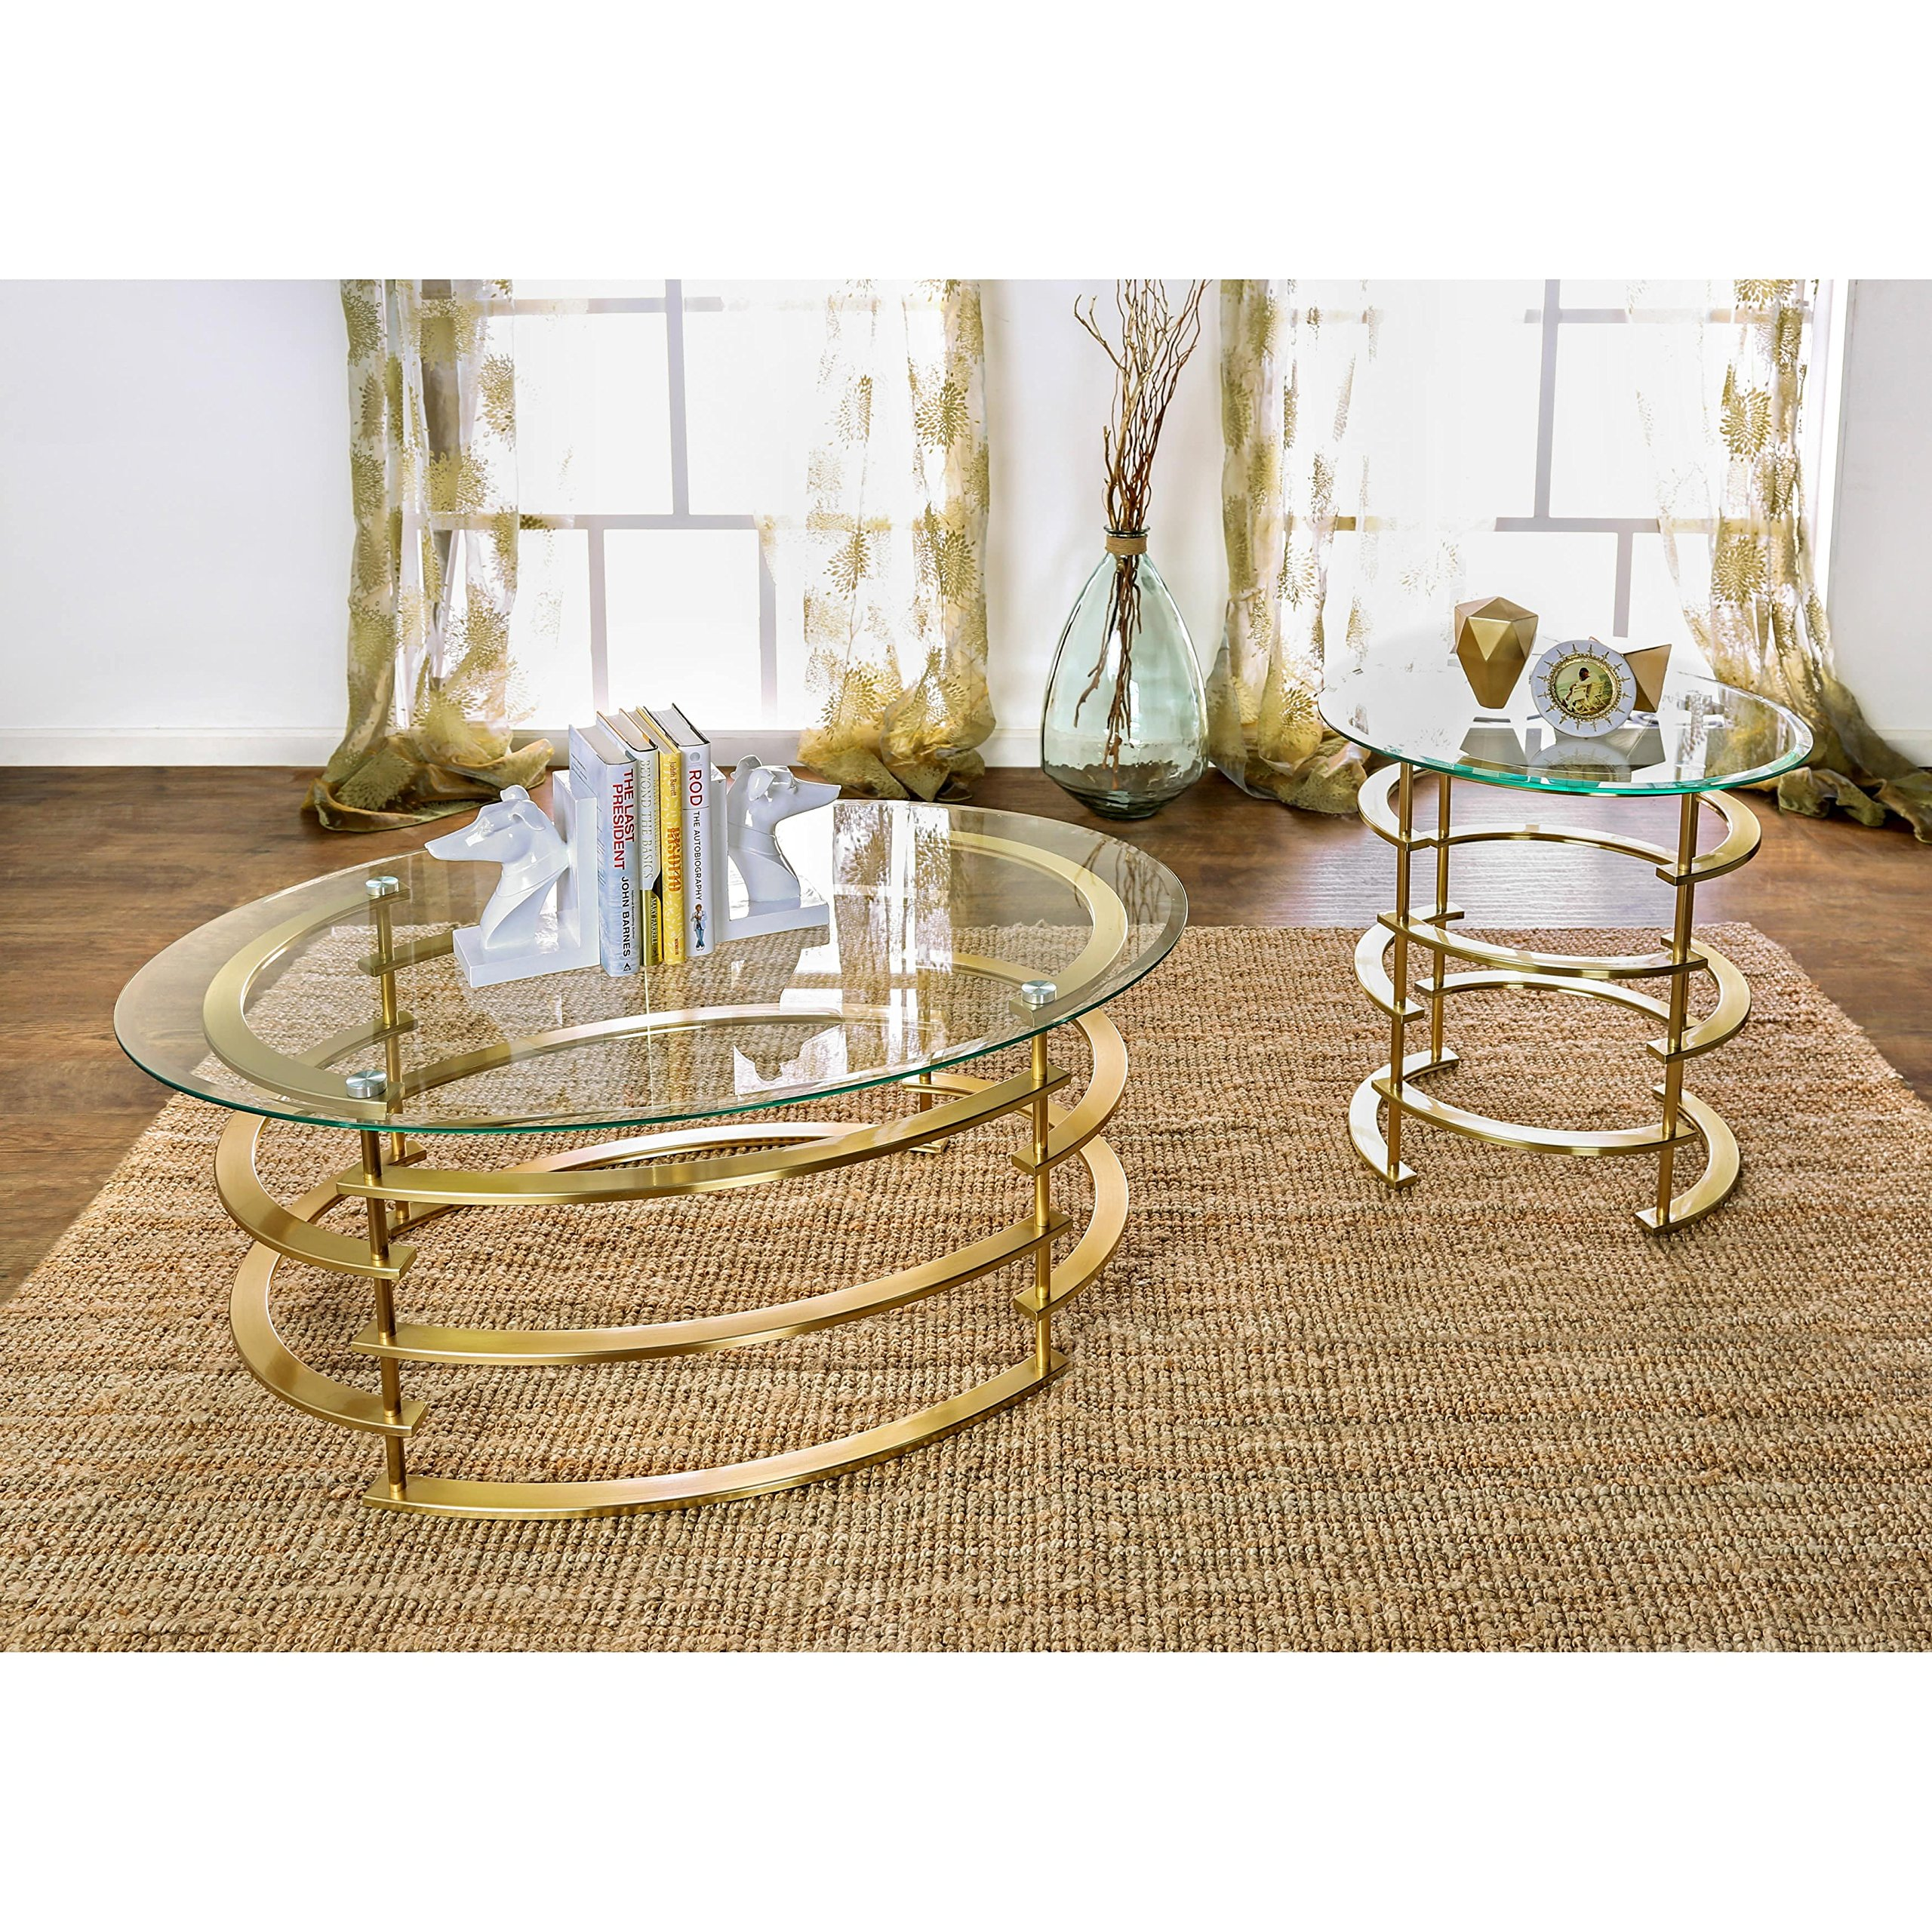 Furniture of America Odella Contemporary 2-piece Glam Glass Top Accent Table Set Gold Gold Finish